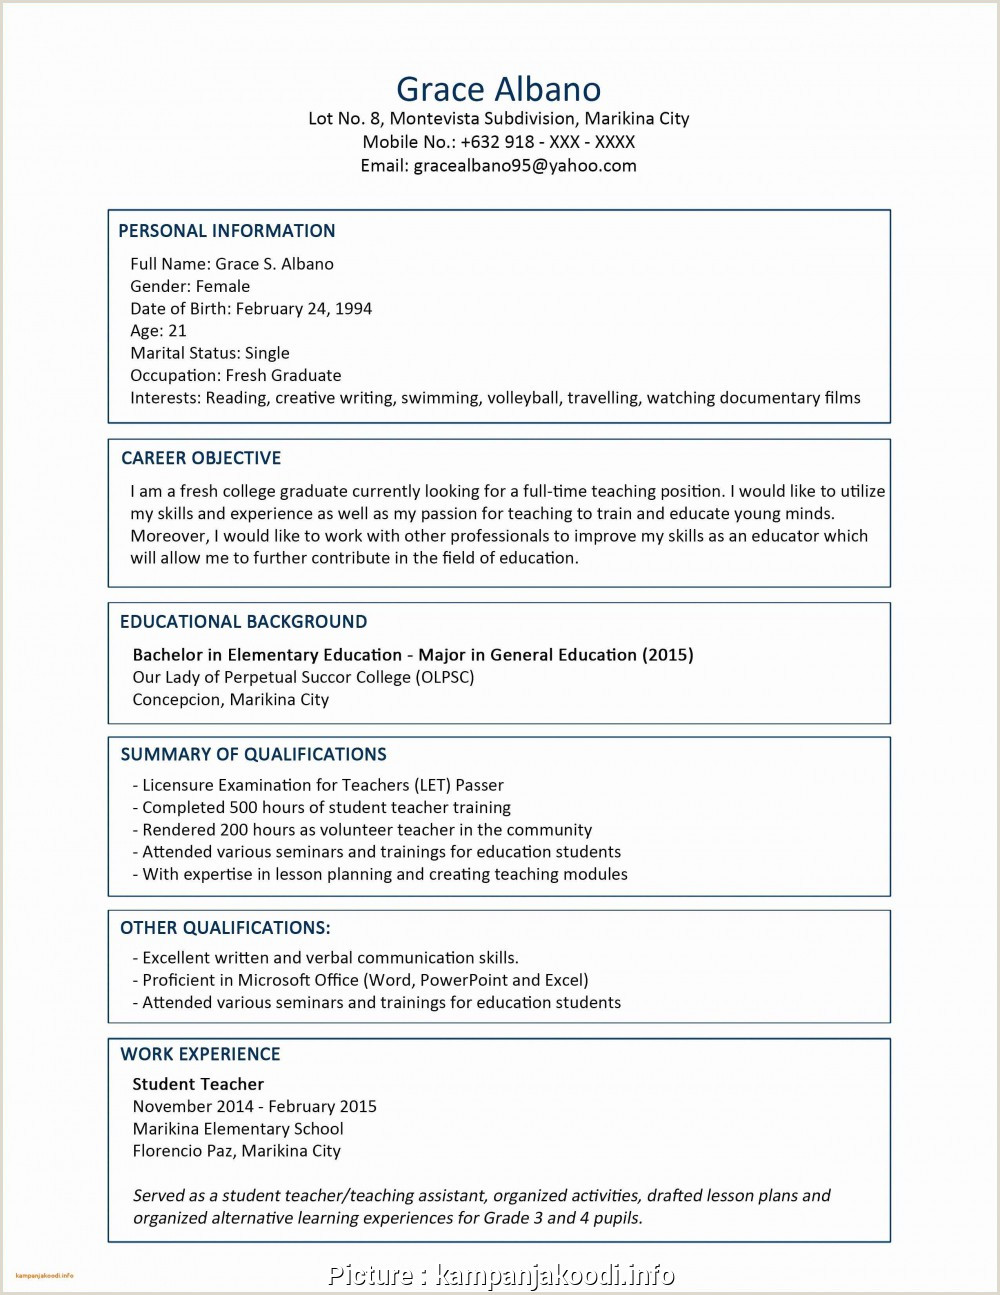 Training Session Plan Template 4 Creative Basic Lesson Plan Template Collections Usa